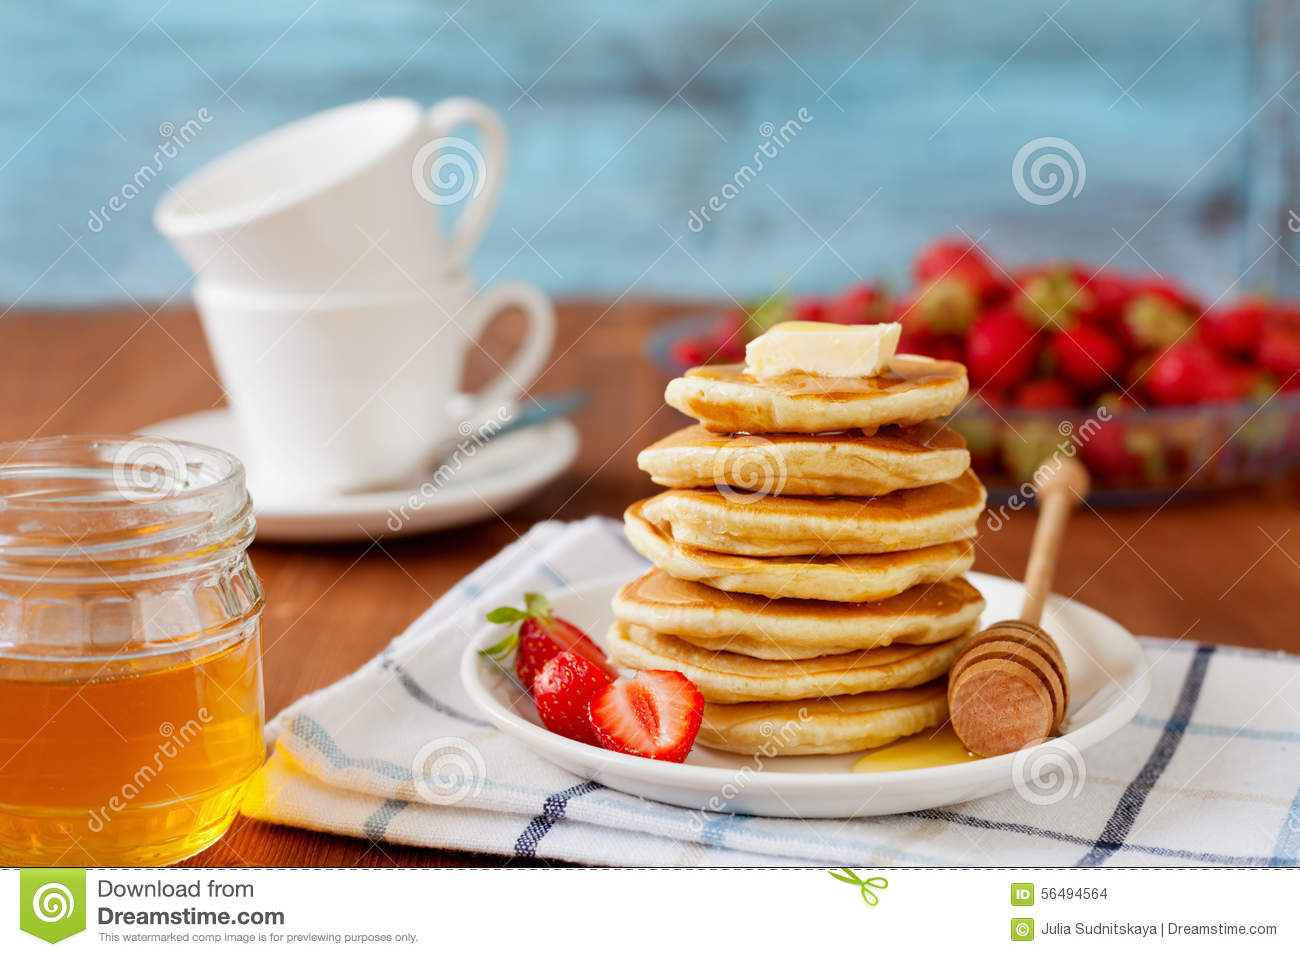 Food To Make Using Strawberry Syrup